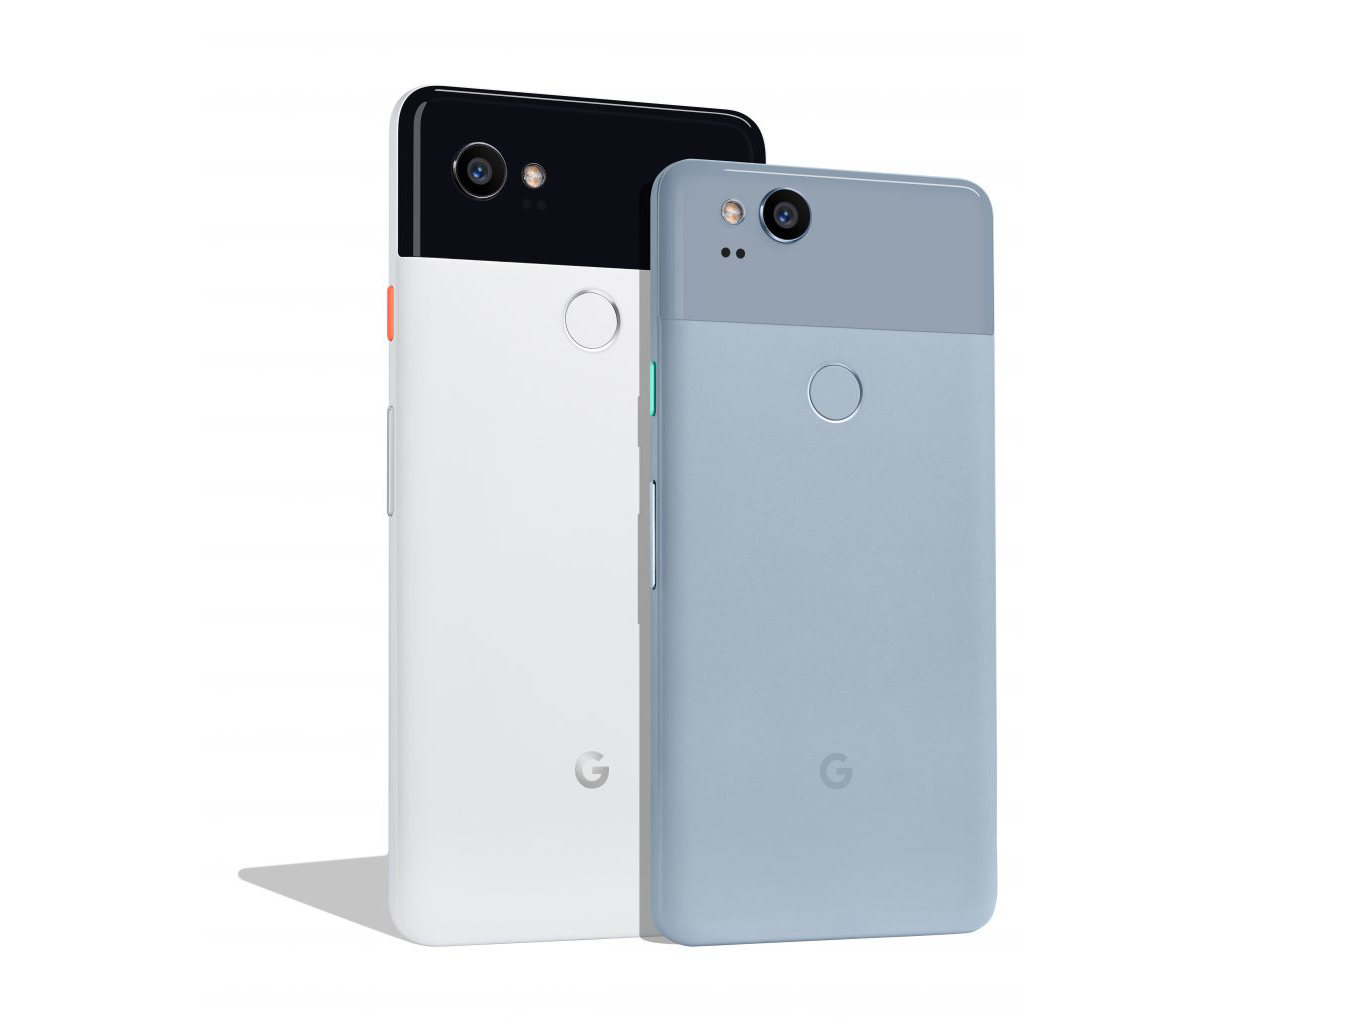 Google Pixel 2 reviewed: Sets new record for overall smartphone camera quality - DxOMark